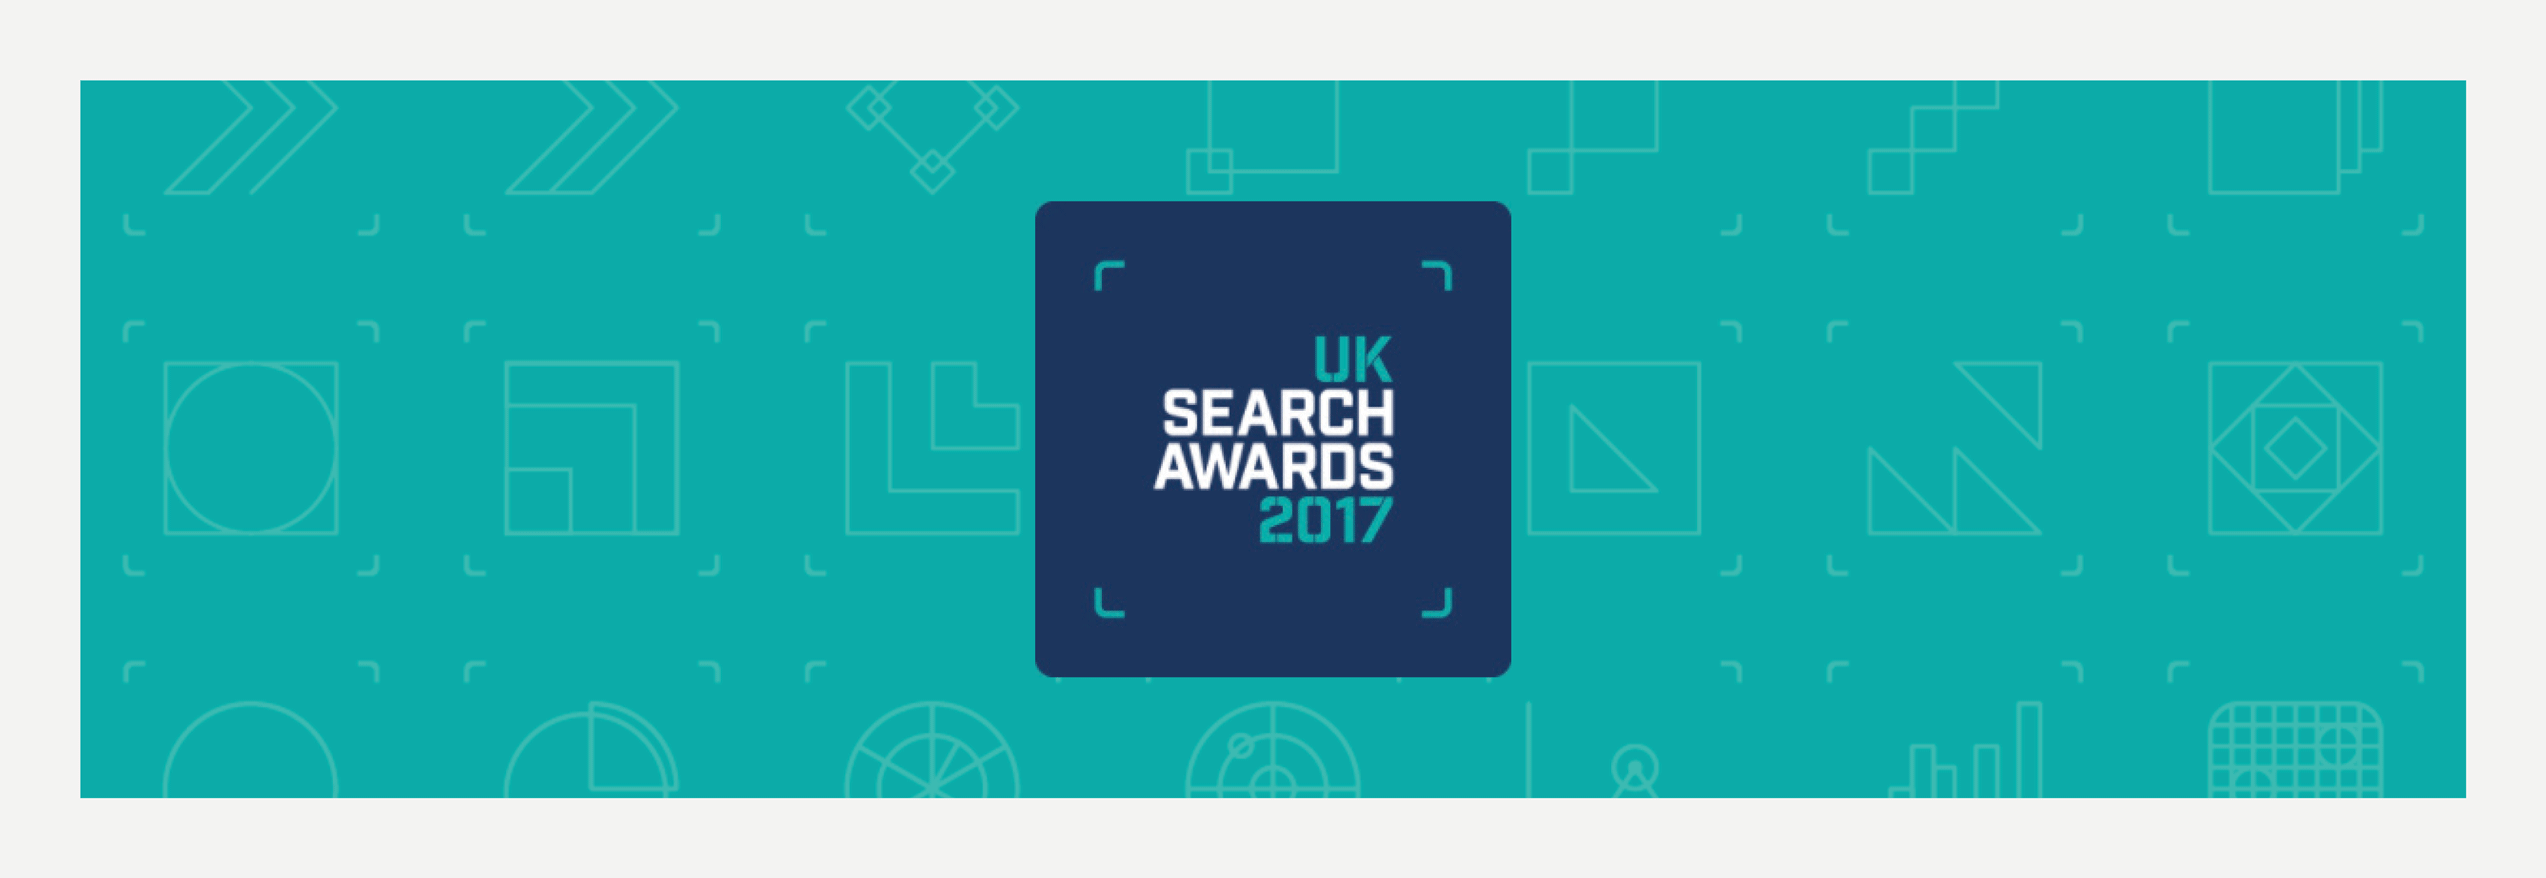 UK Search Awards header